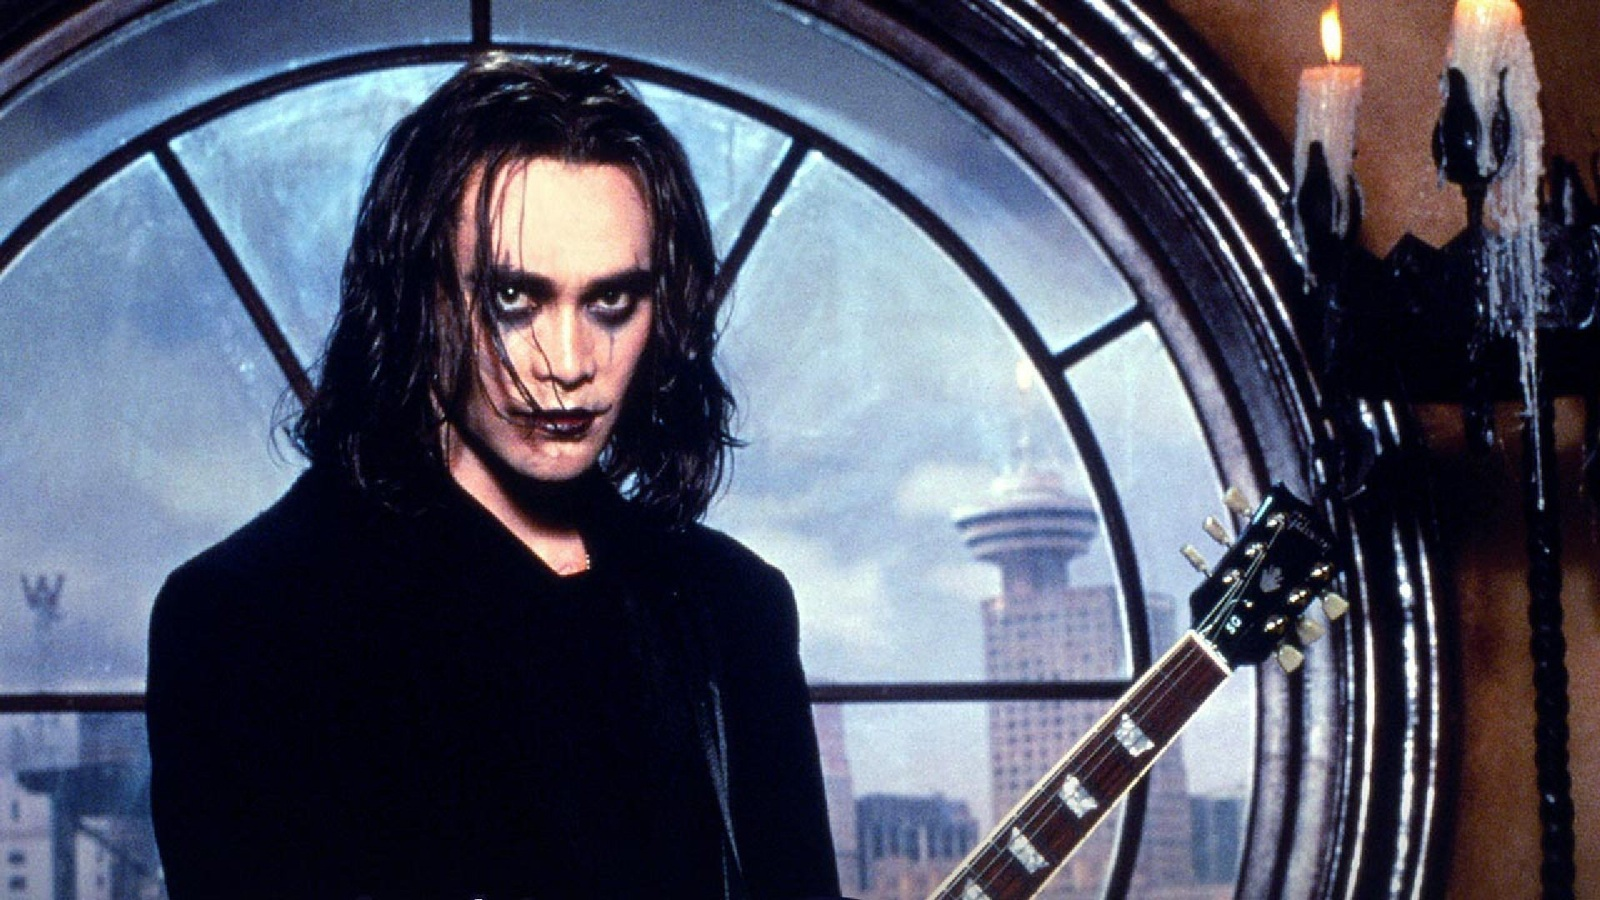 Ворон: Лестница в небо / The Crow: Stairway to Heaven background